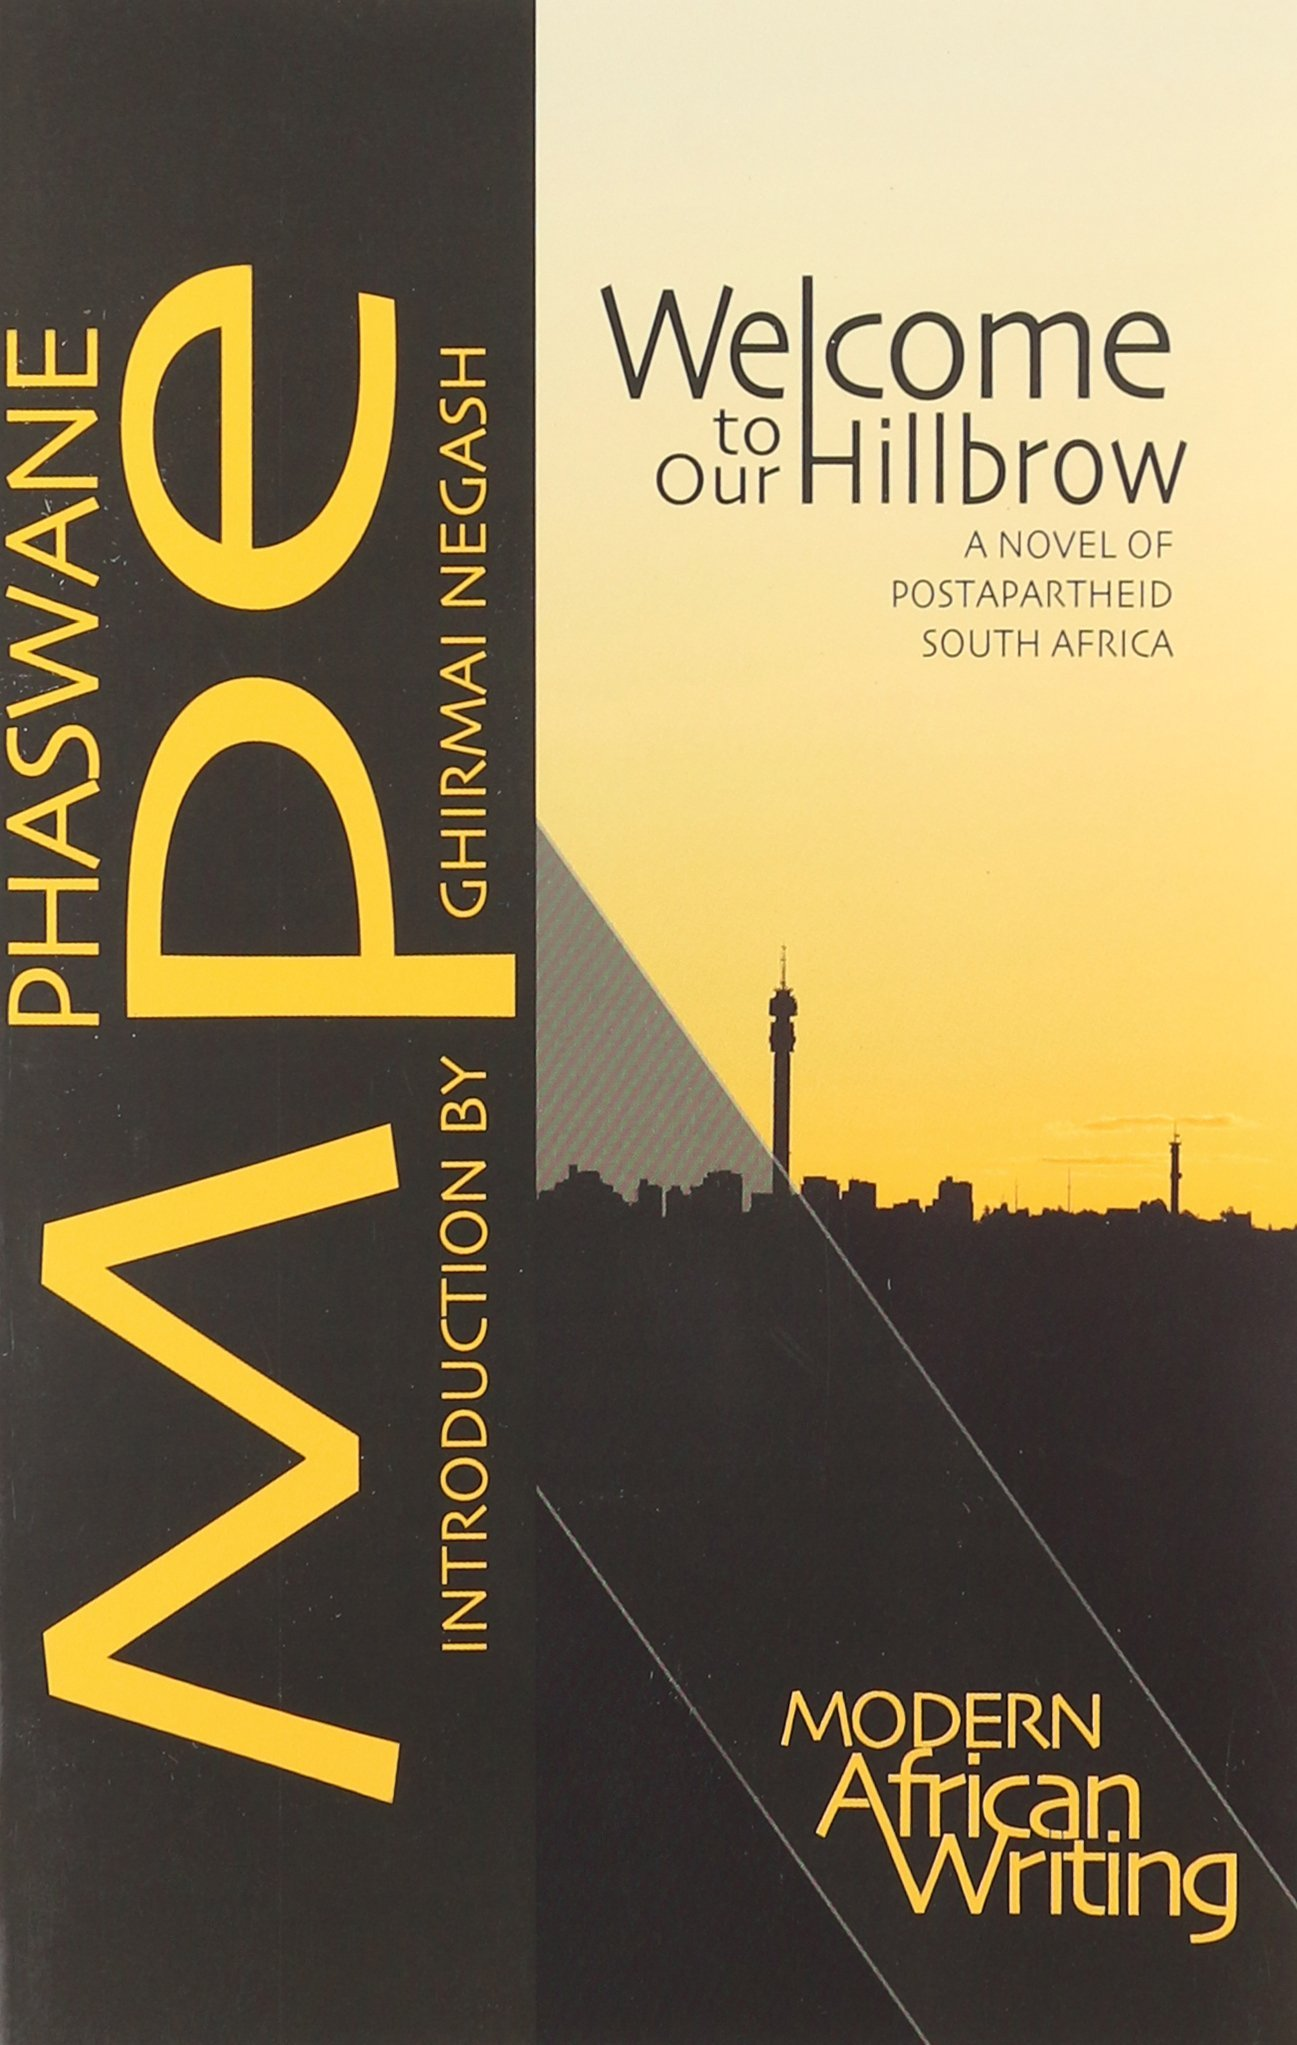 Amazon: Welcome To Our Hillbrow: A Novel Of Postapartheid South Africa  (modern African Writing Series) (9780821419625): Phaswane Mpe, Ghirmai  Negash: